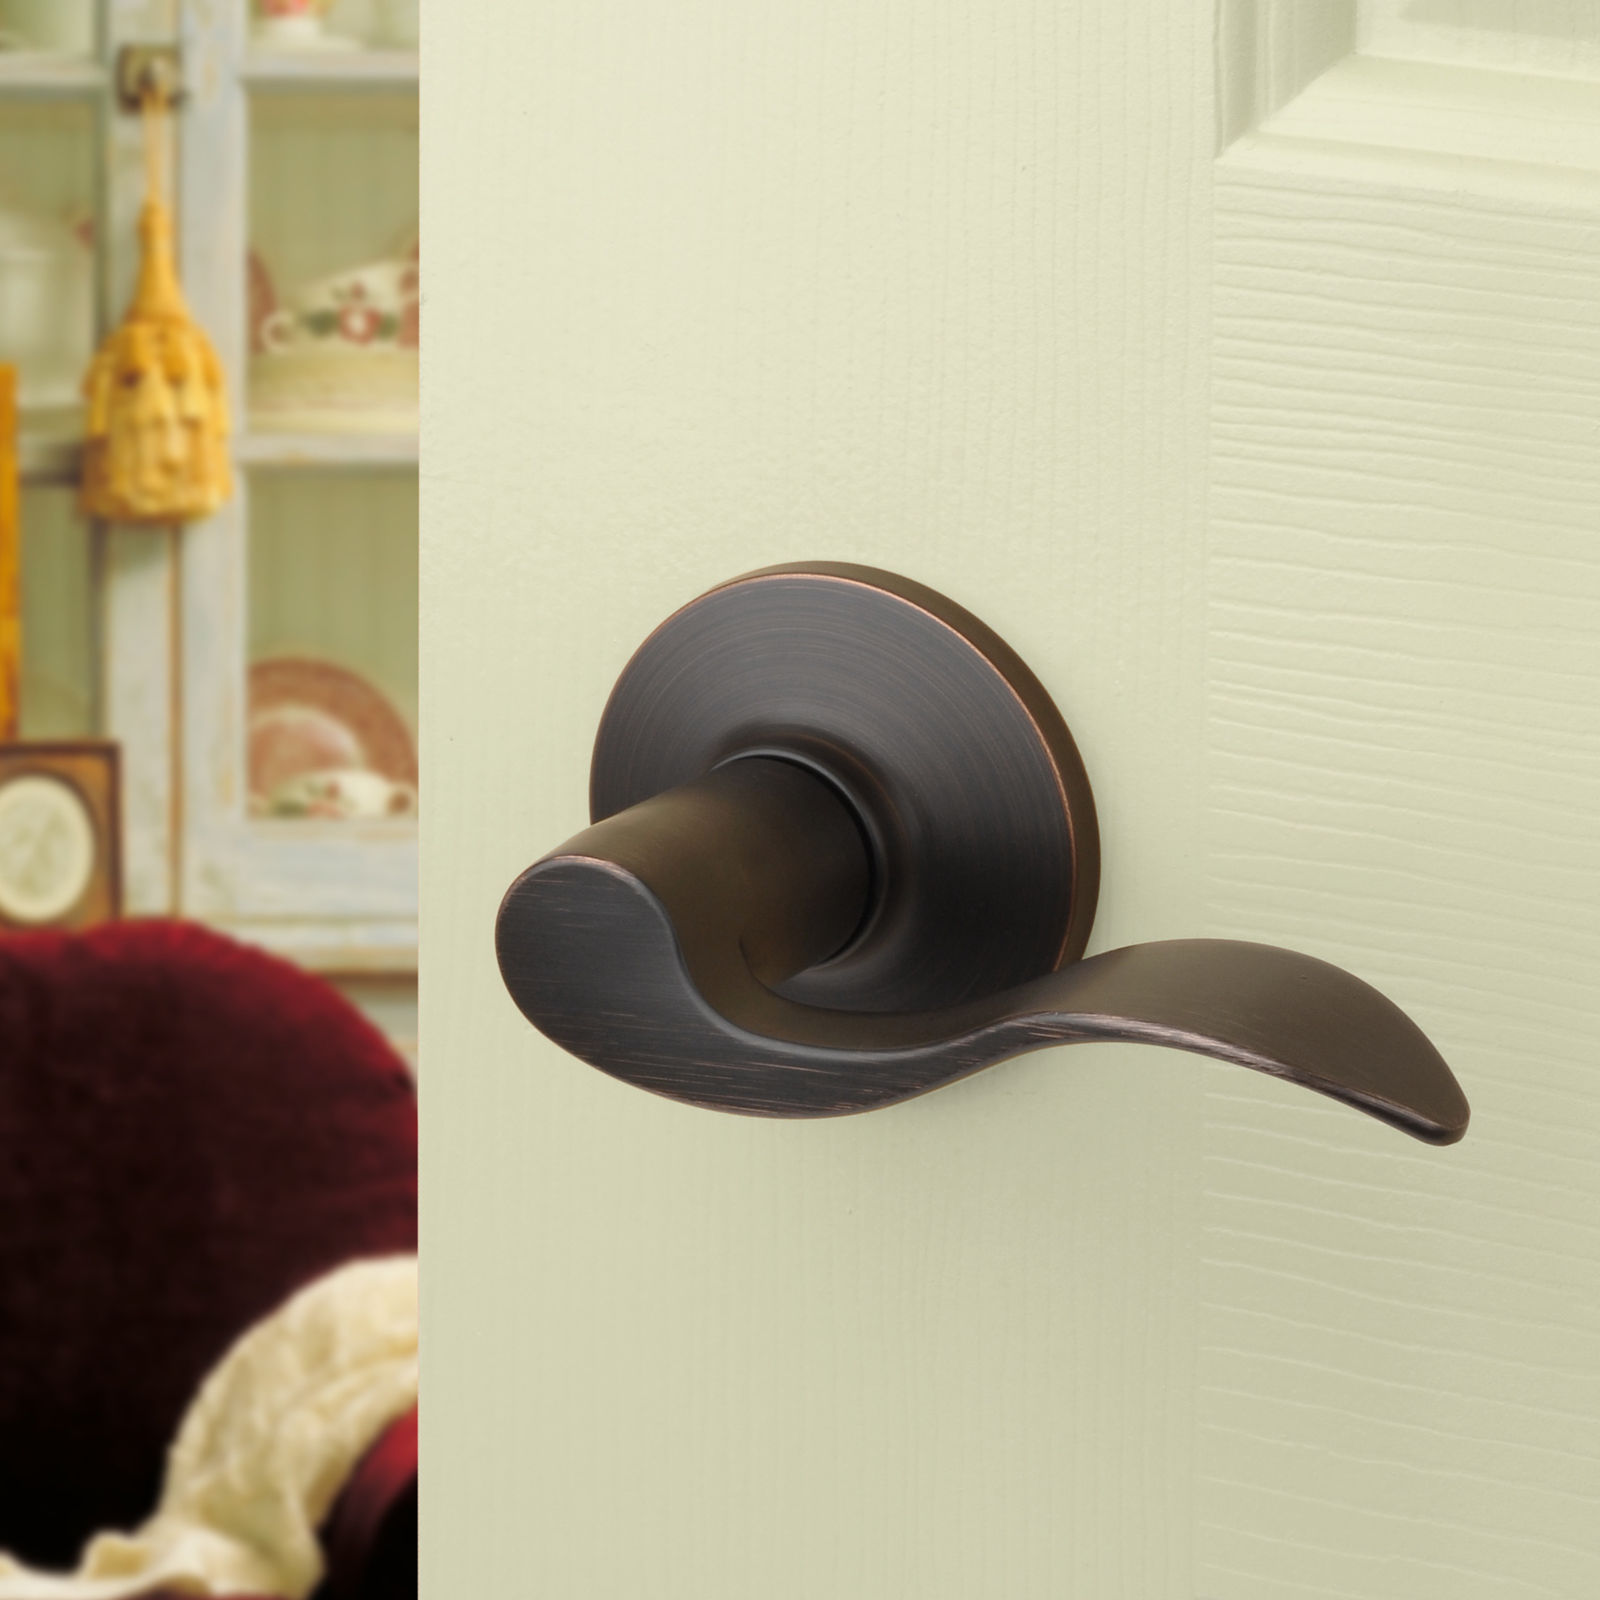 Interior door levers oil rubbed bronze look attractive thanks to their finish